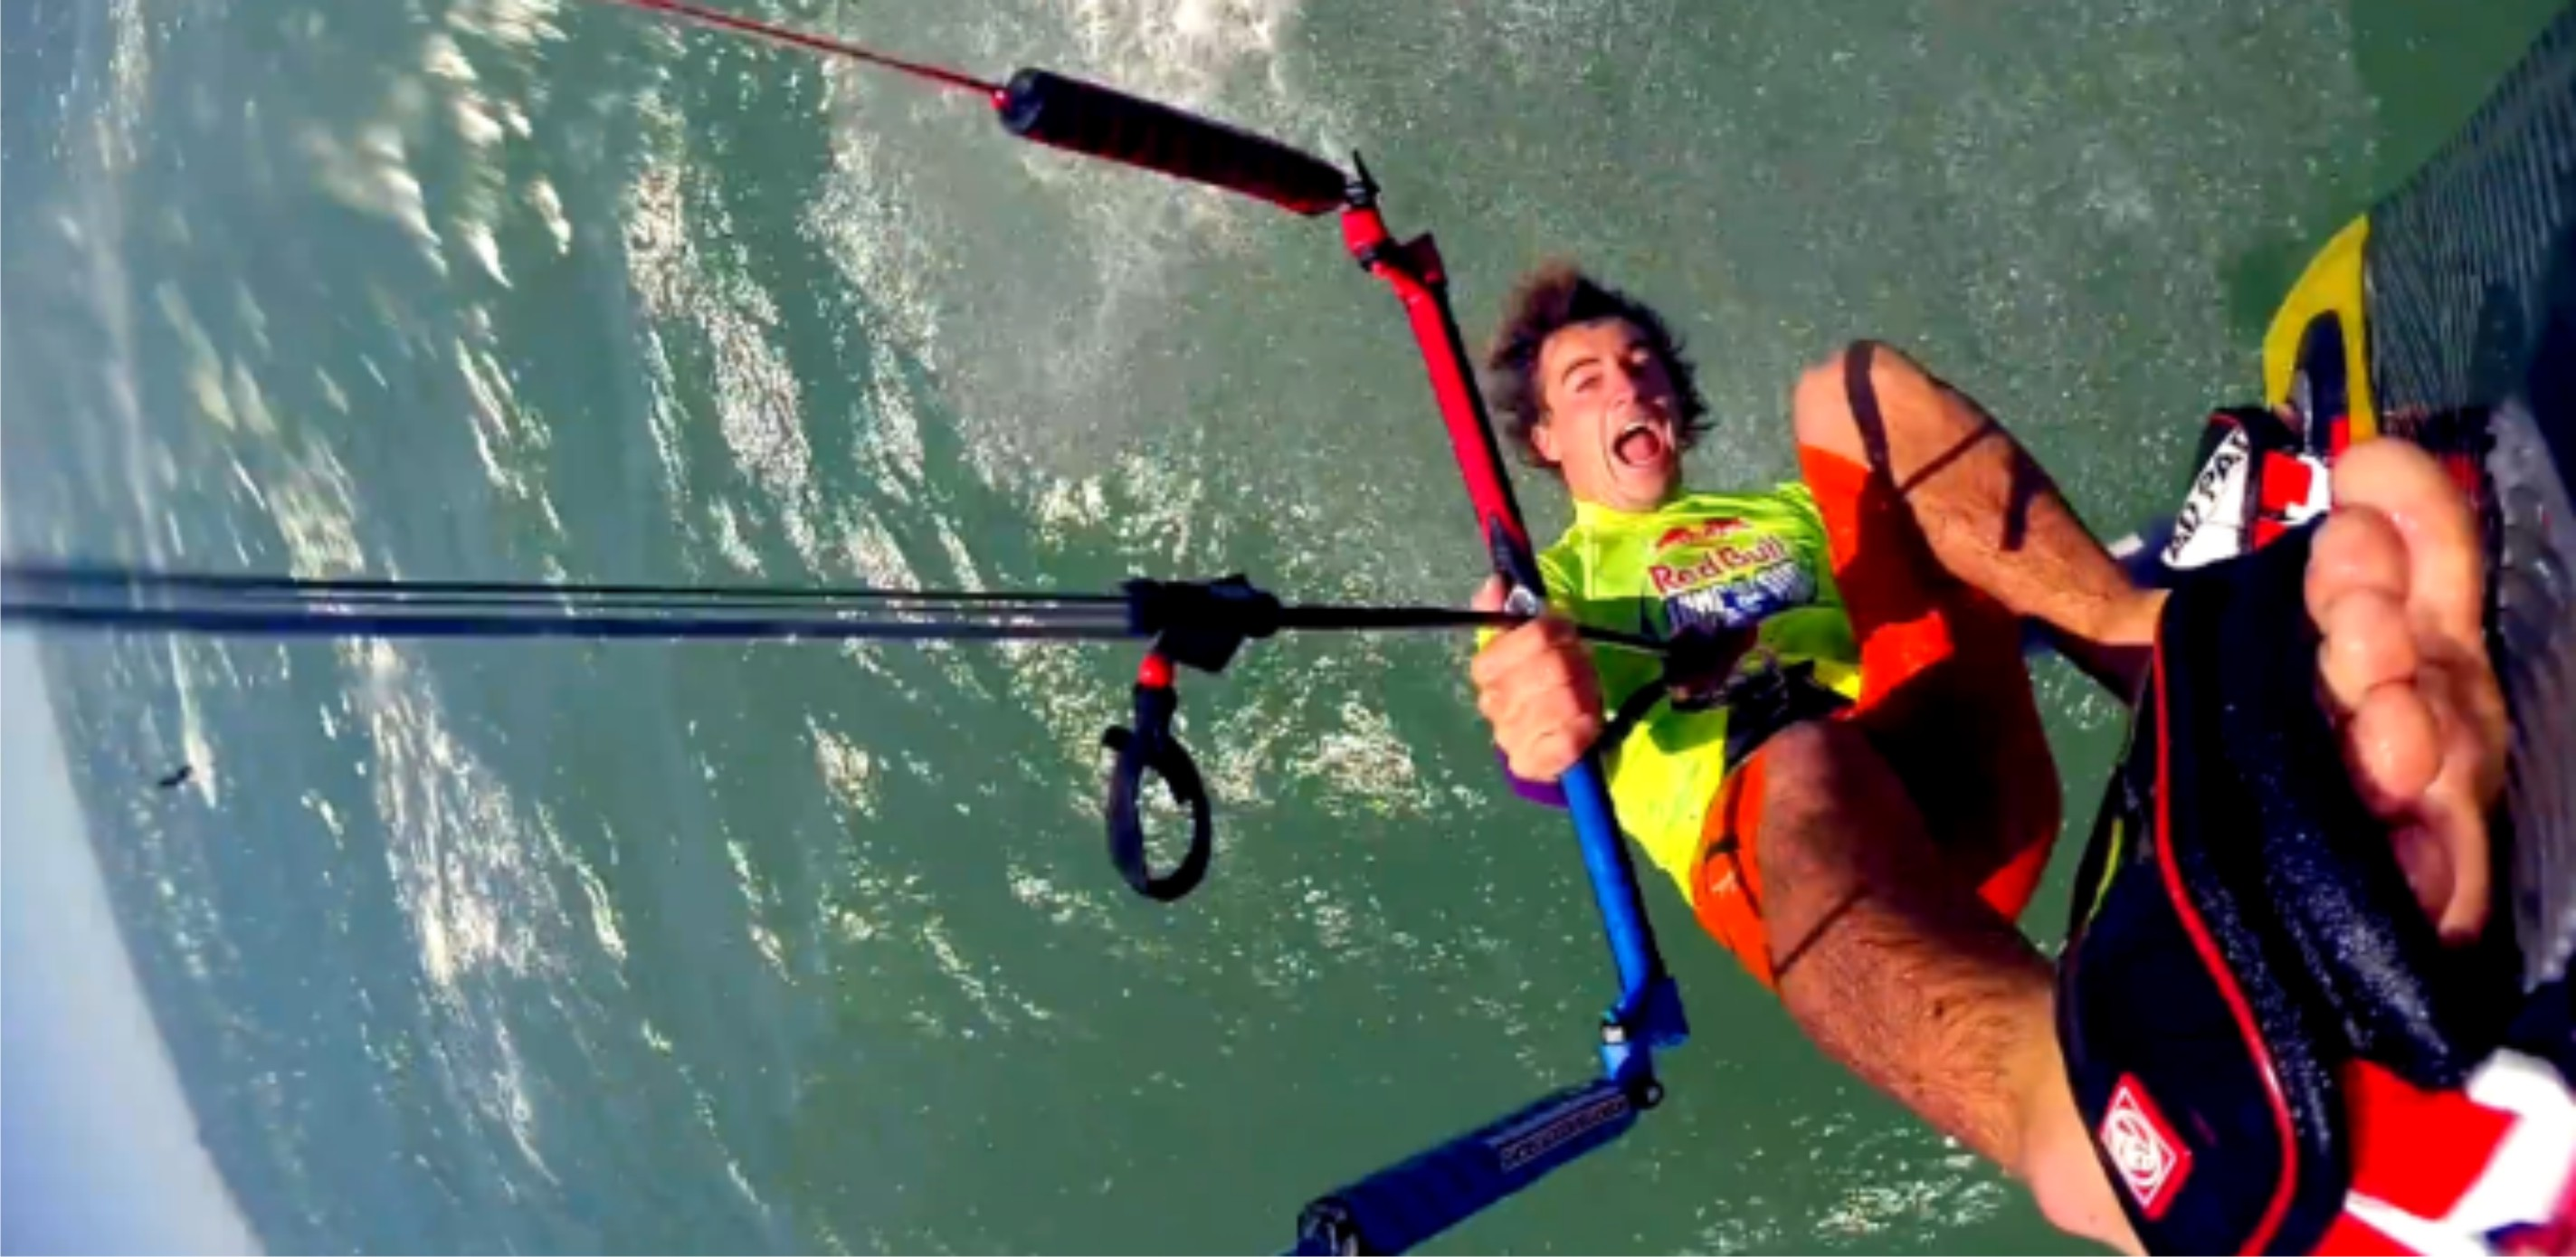 Luke McGillewie Kiteboarding action in preparation for Red Bull King of the Air 2015